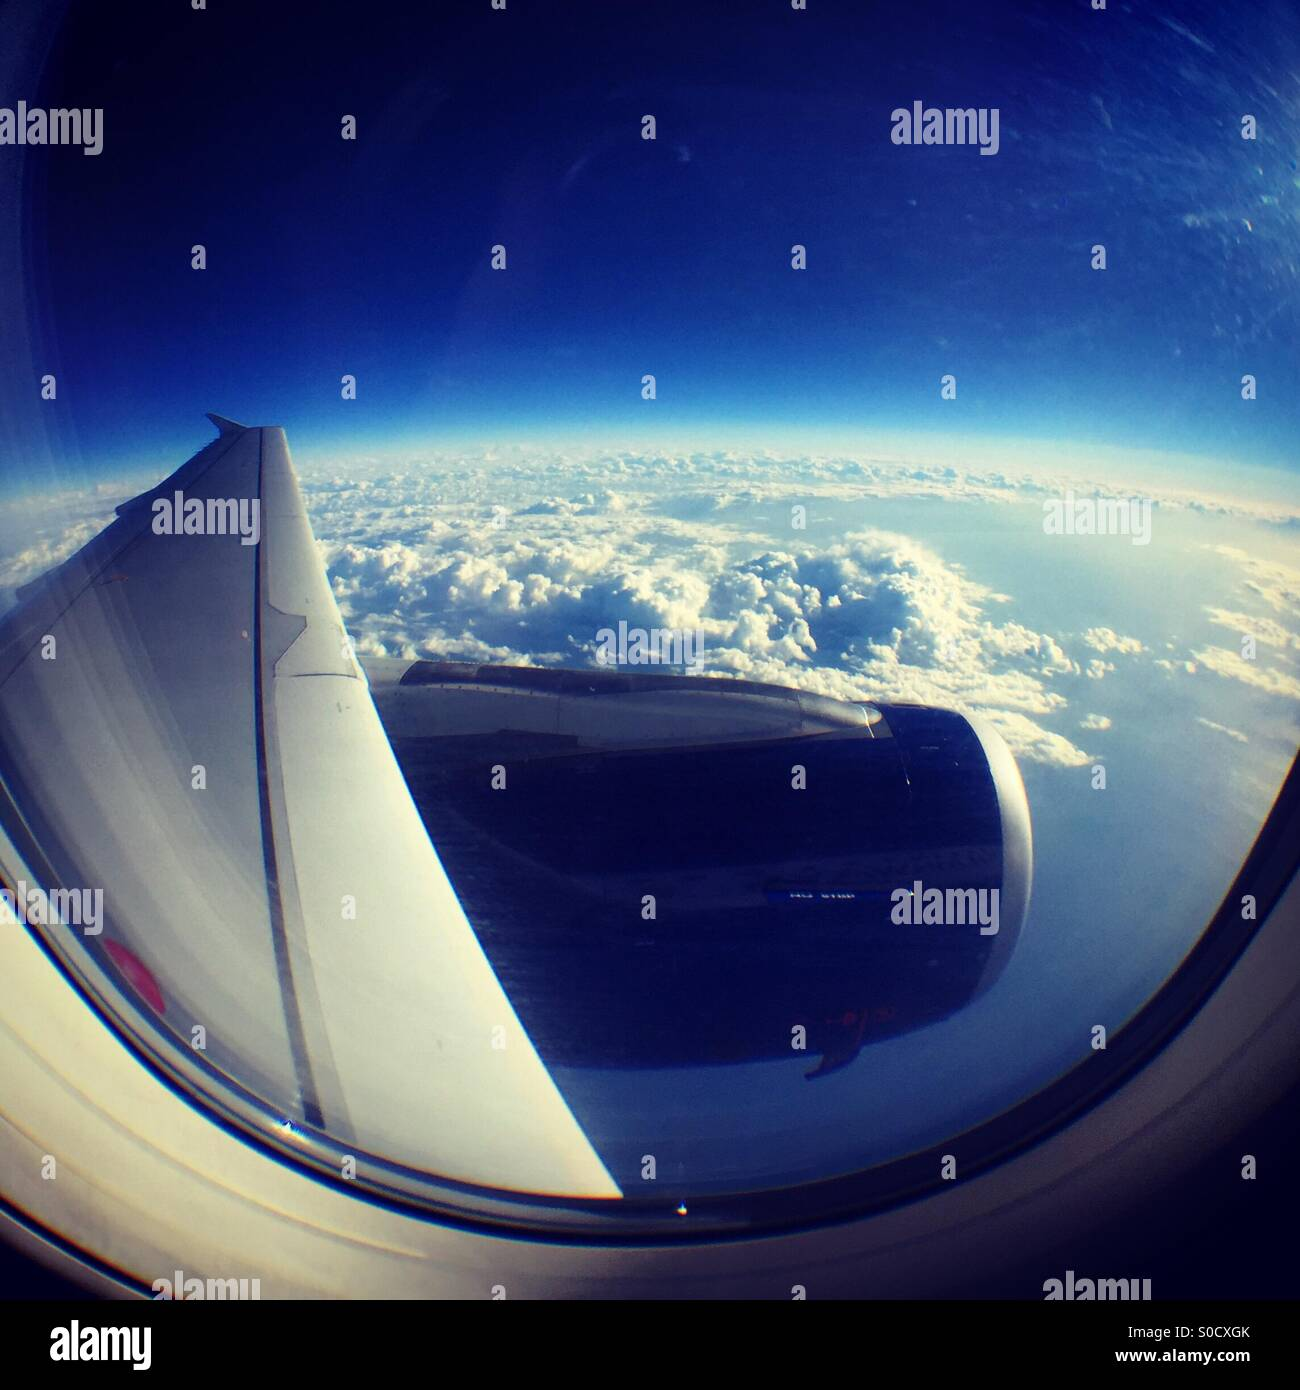 Looking out over the wing of a plane at the curvature of the earth - Stock Image